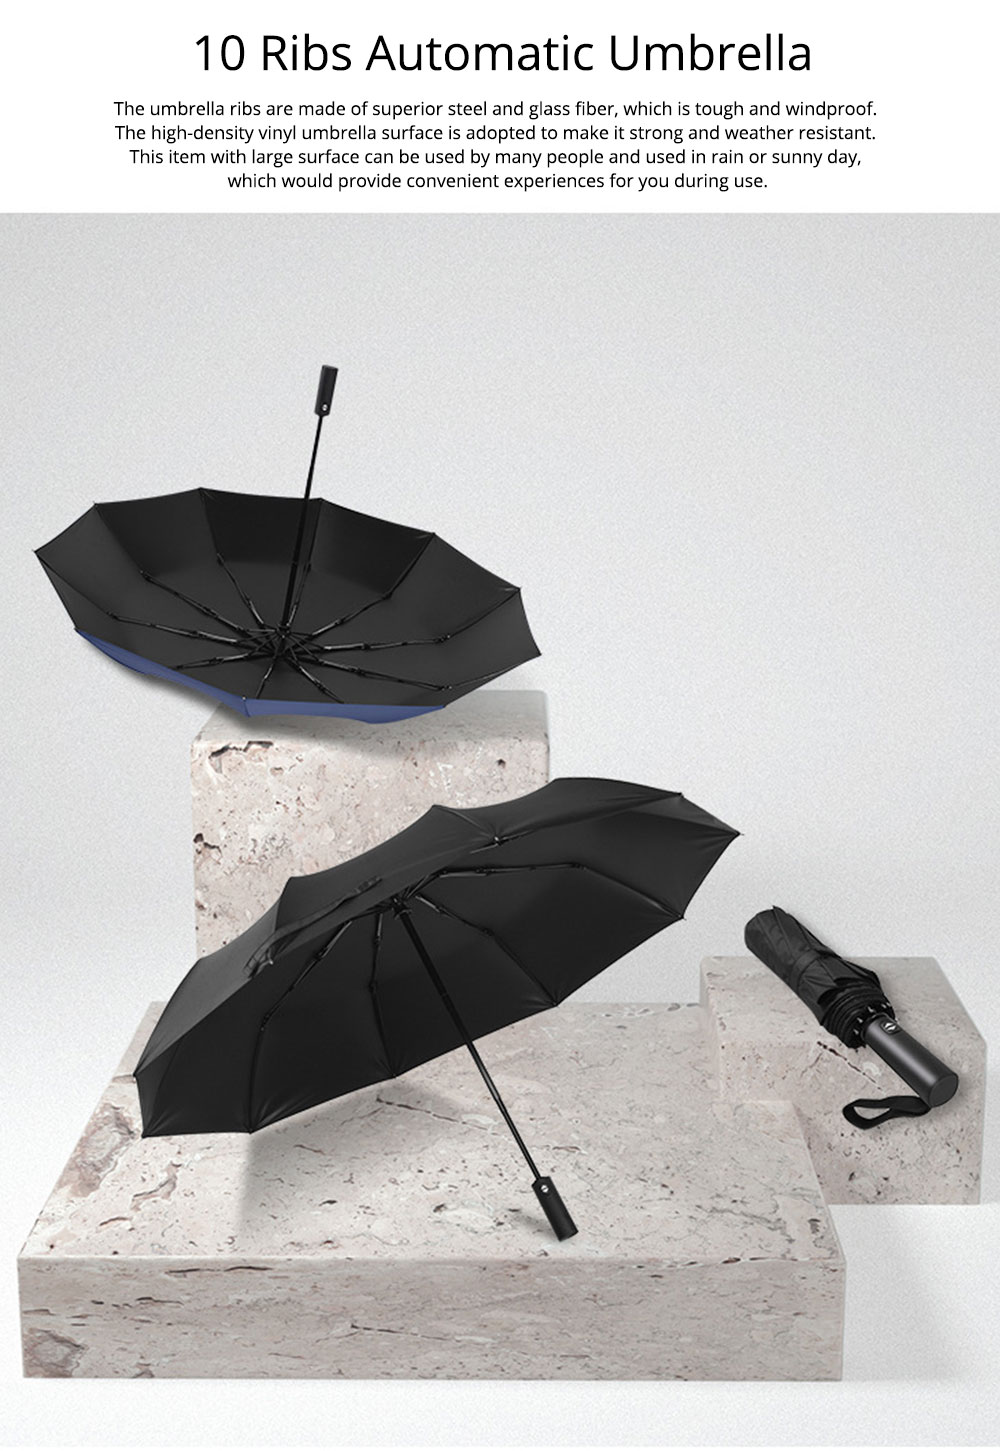 Automatic Umbrella 10 Ribs for Rain and Sunny Day, Super Waterproof Windproof Sun-resistant Folding Umbrella for Two Person 0